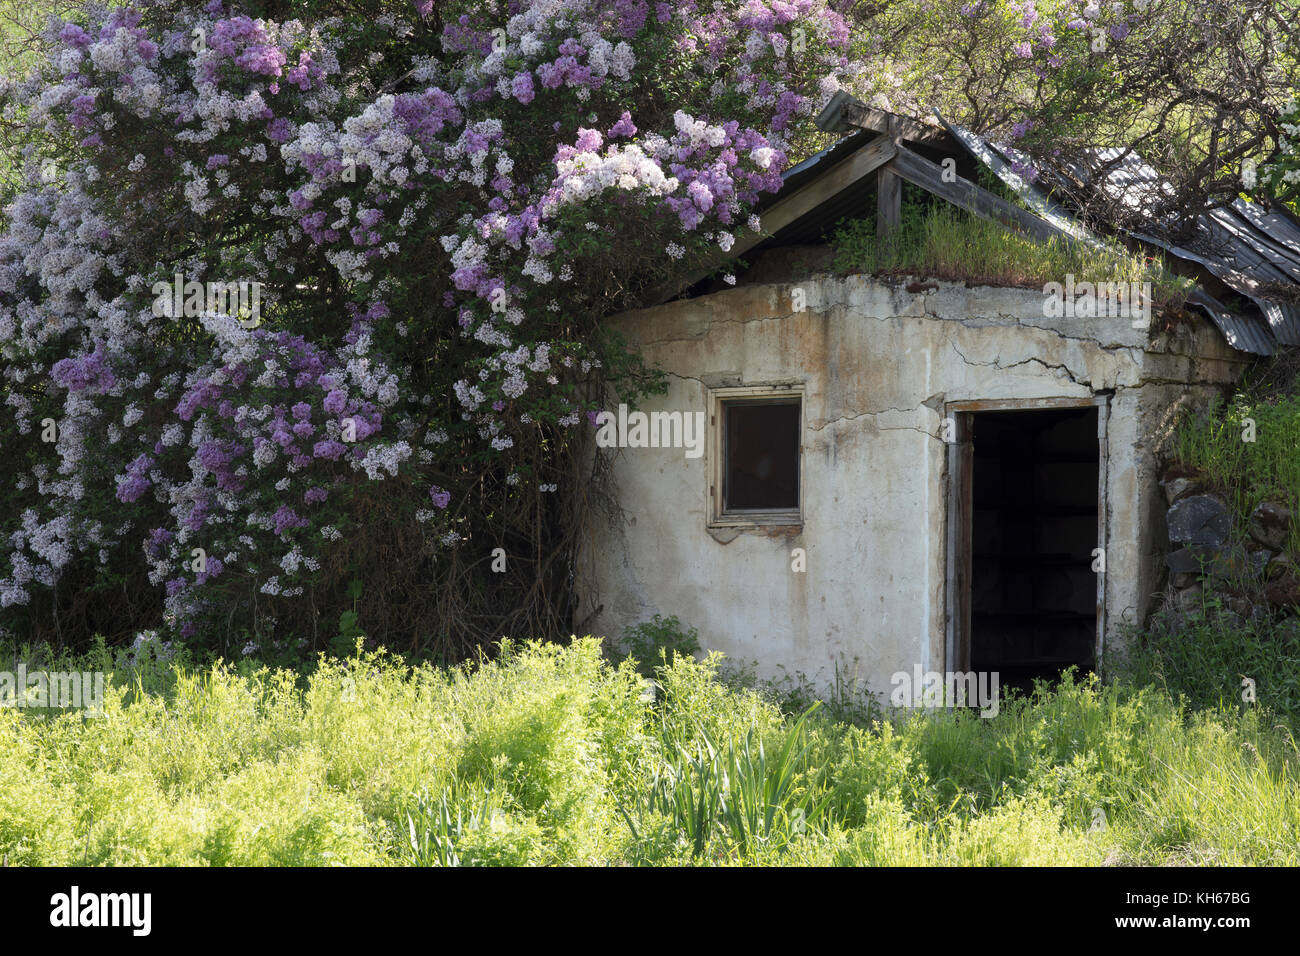 Old derelict building surrounded by flowers near Palouse region of Washington State America - Stock Image